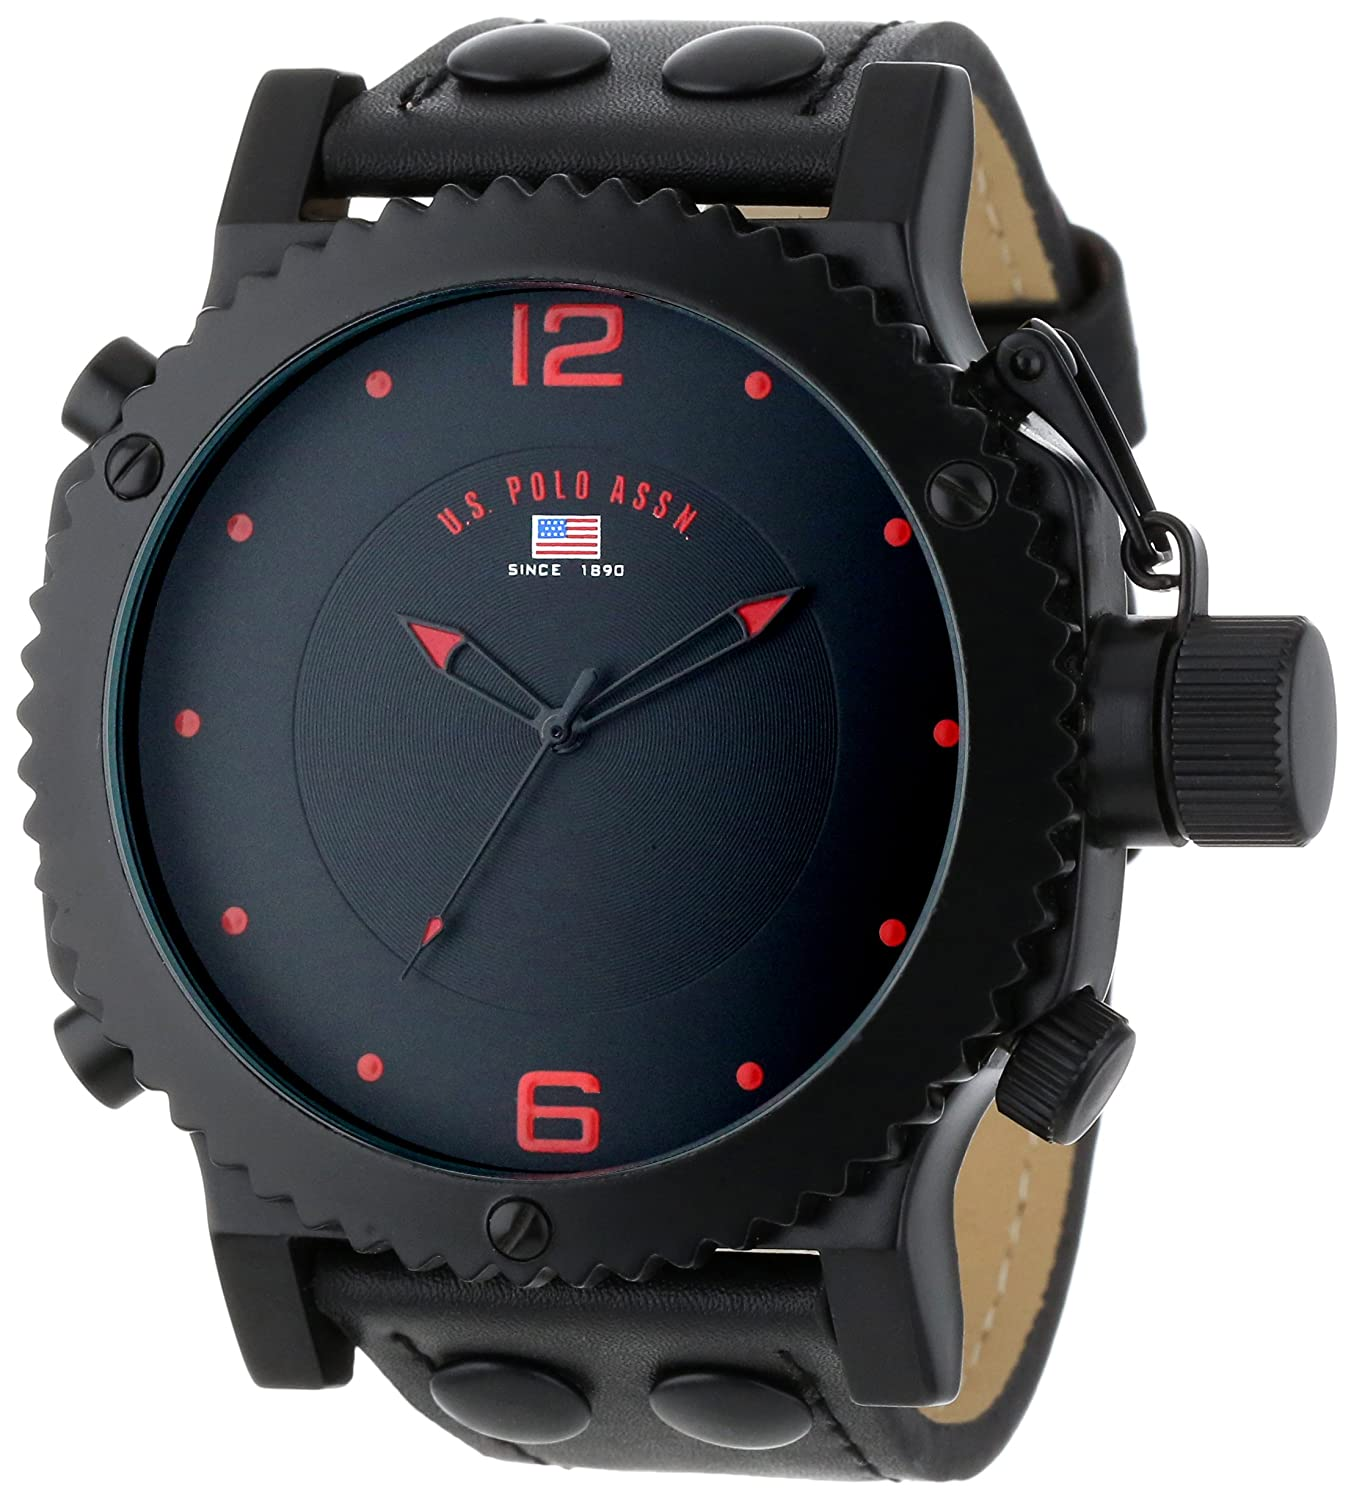 u s polo assn sport men s us8203 gunmetal tone watch amazon in u s polo assn classic mens us4023 watch black leather band